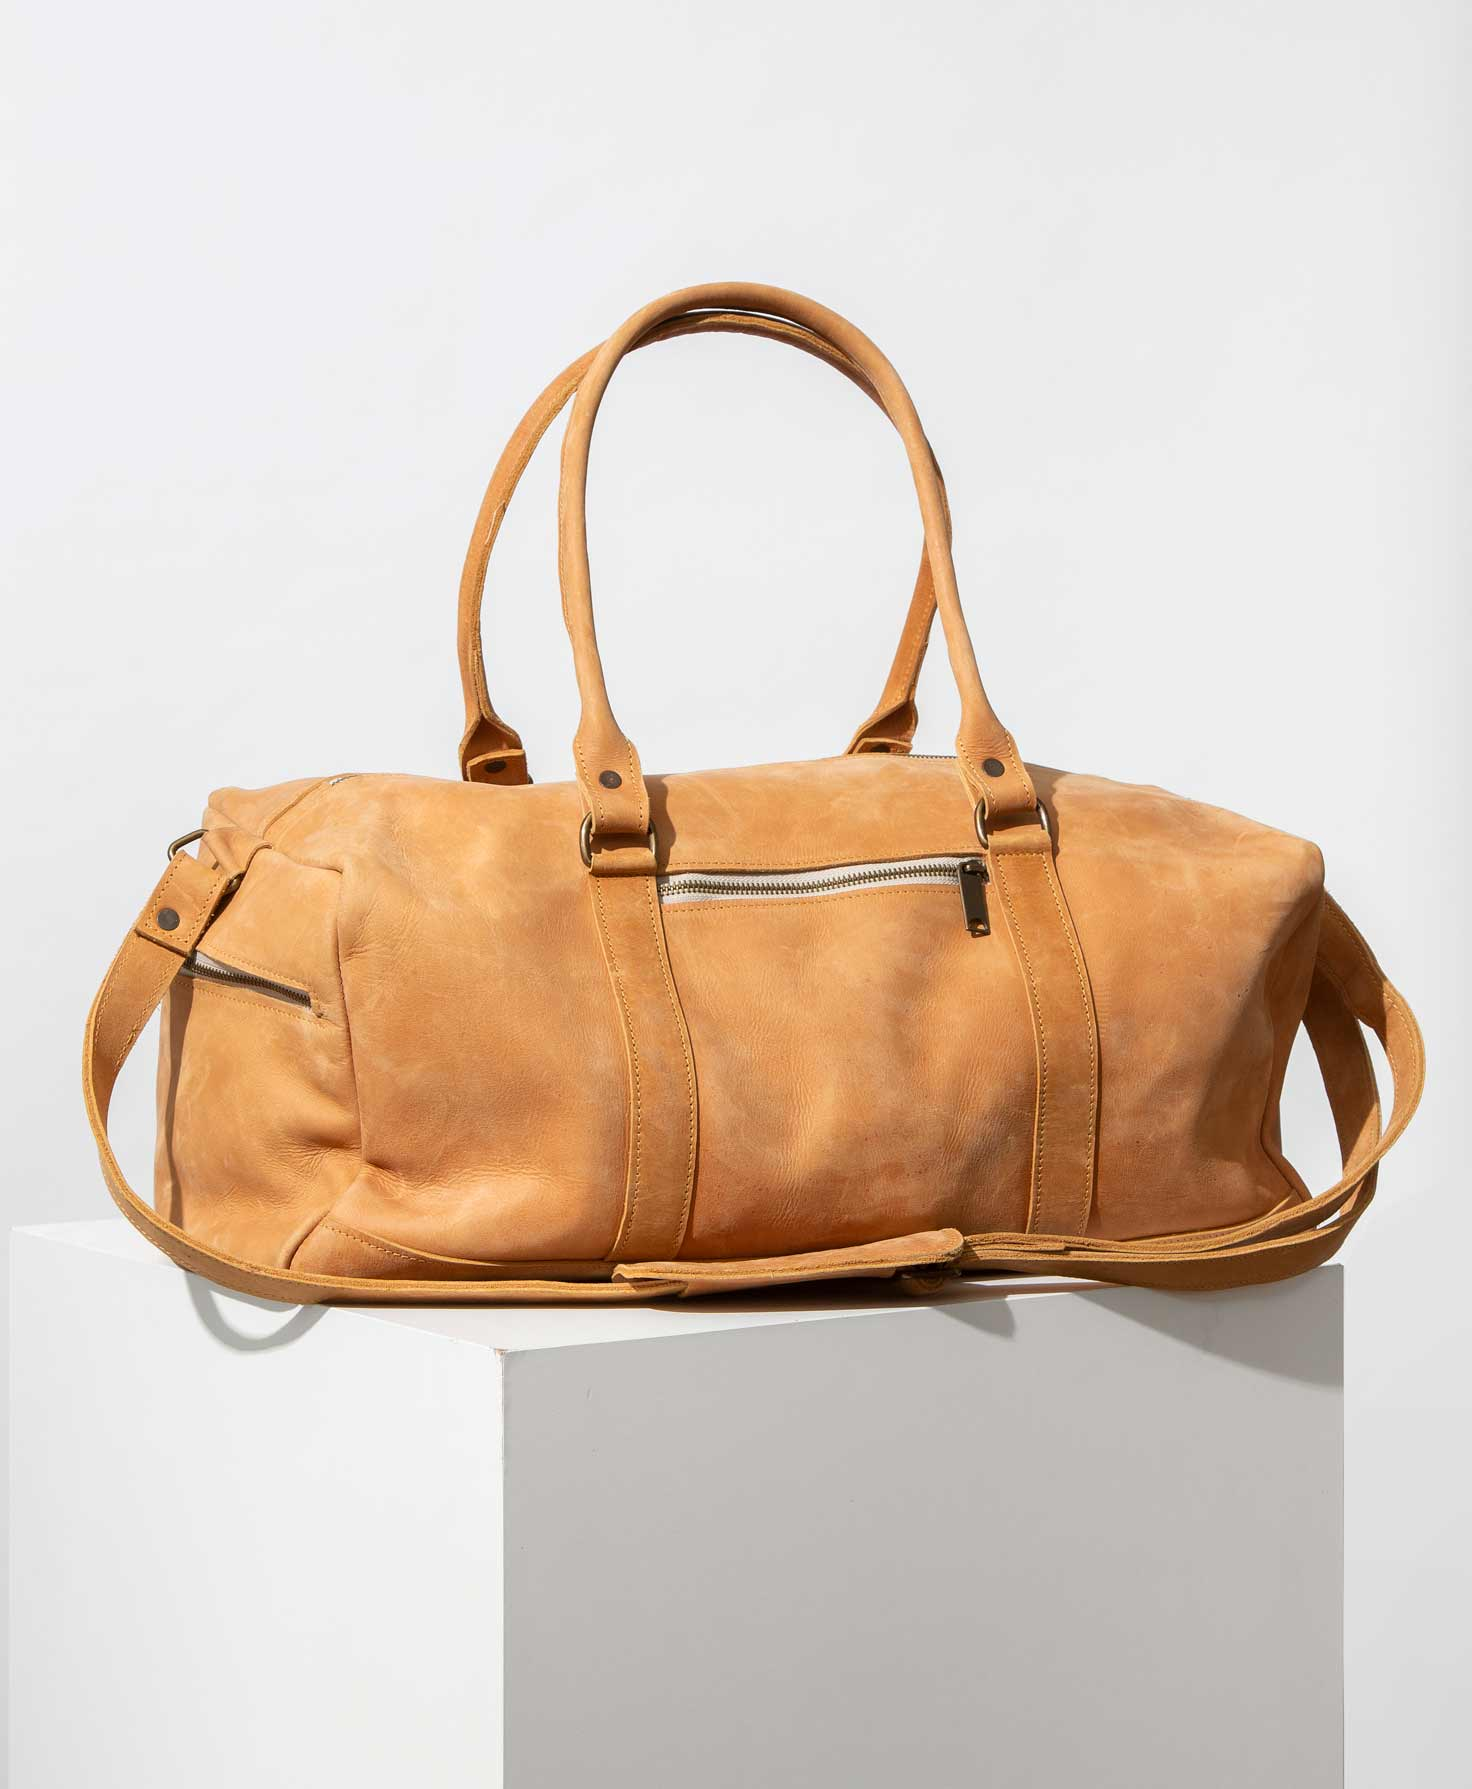 The Awasa Weekender Bag sits on top of a white platform. It is a duffel-style bag made of smooth leather in a shade of light caramel. All of the hardware is bronze-colored. On one end of the bag, there is a zipper pocket. There is another zipper pocket on one of the sides. There are two short, structured leather handles, as well as one long leather strap that can be adjusted or removed.